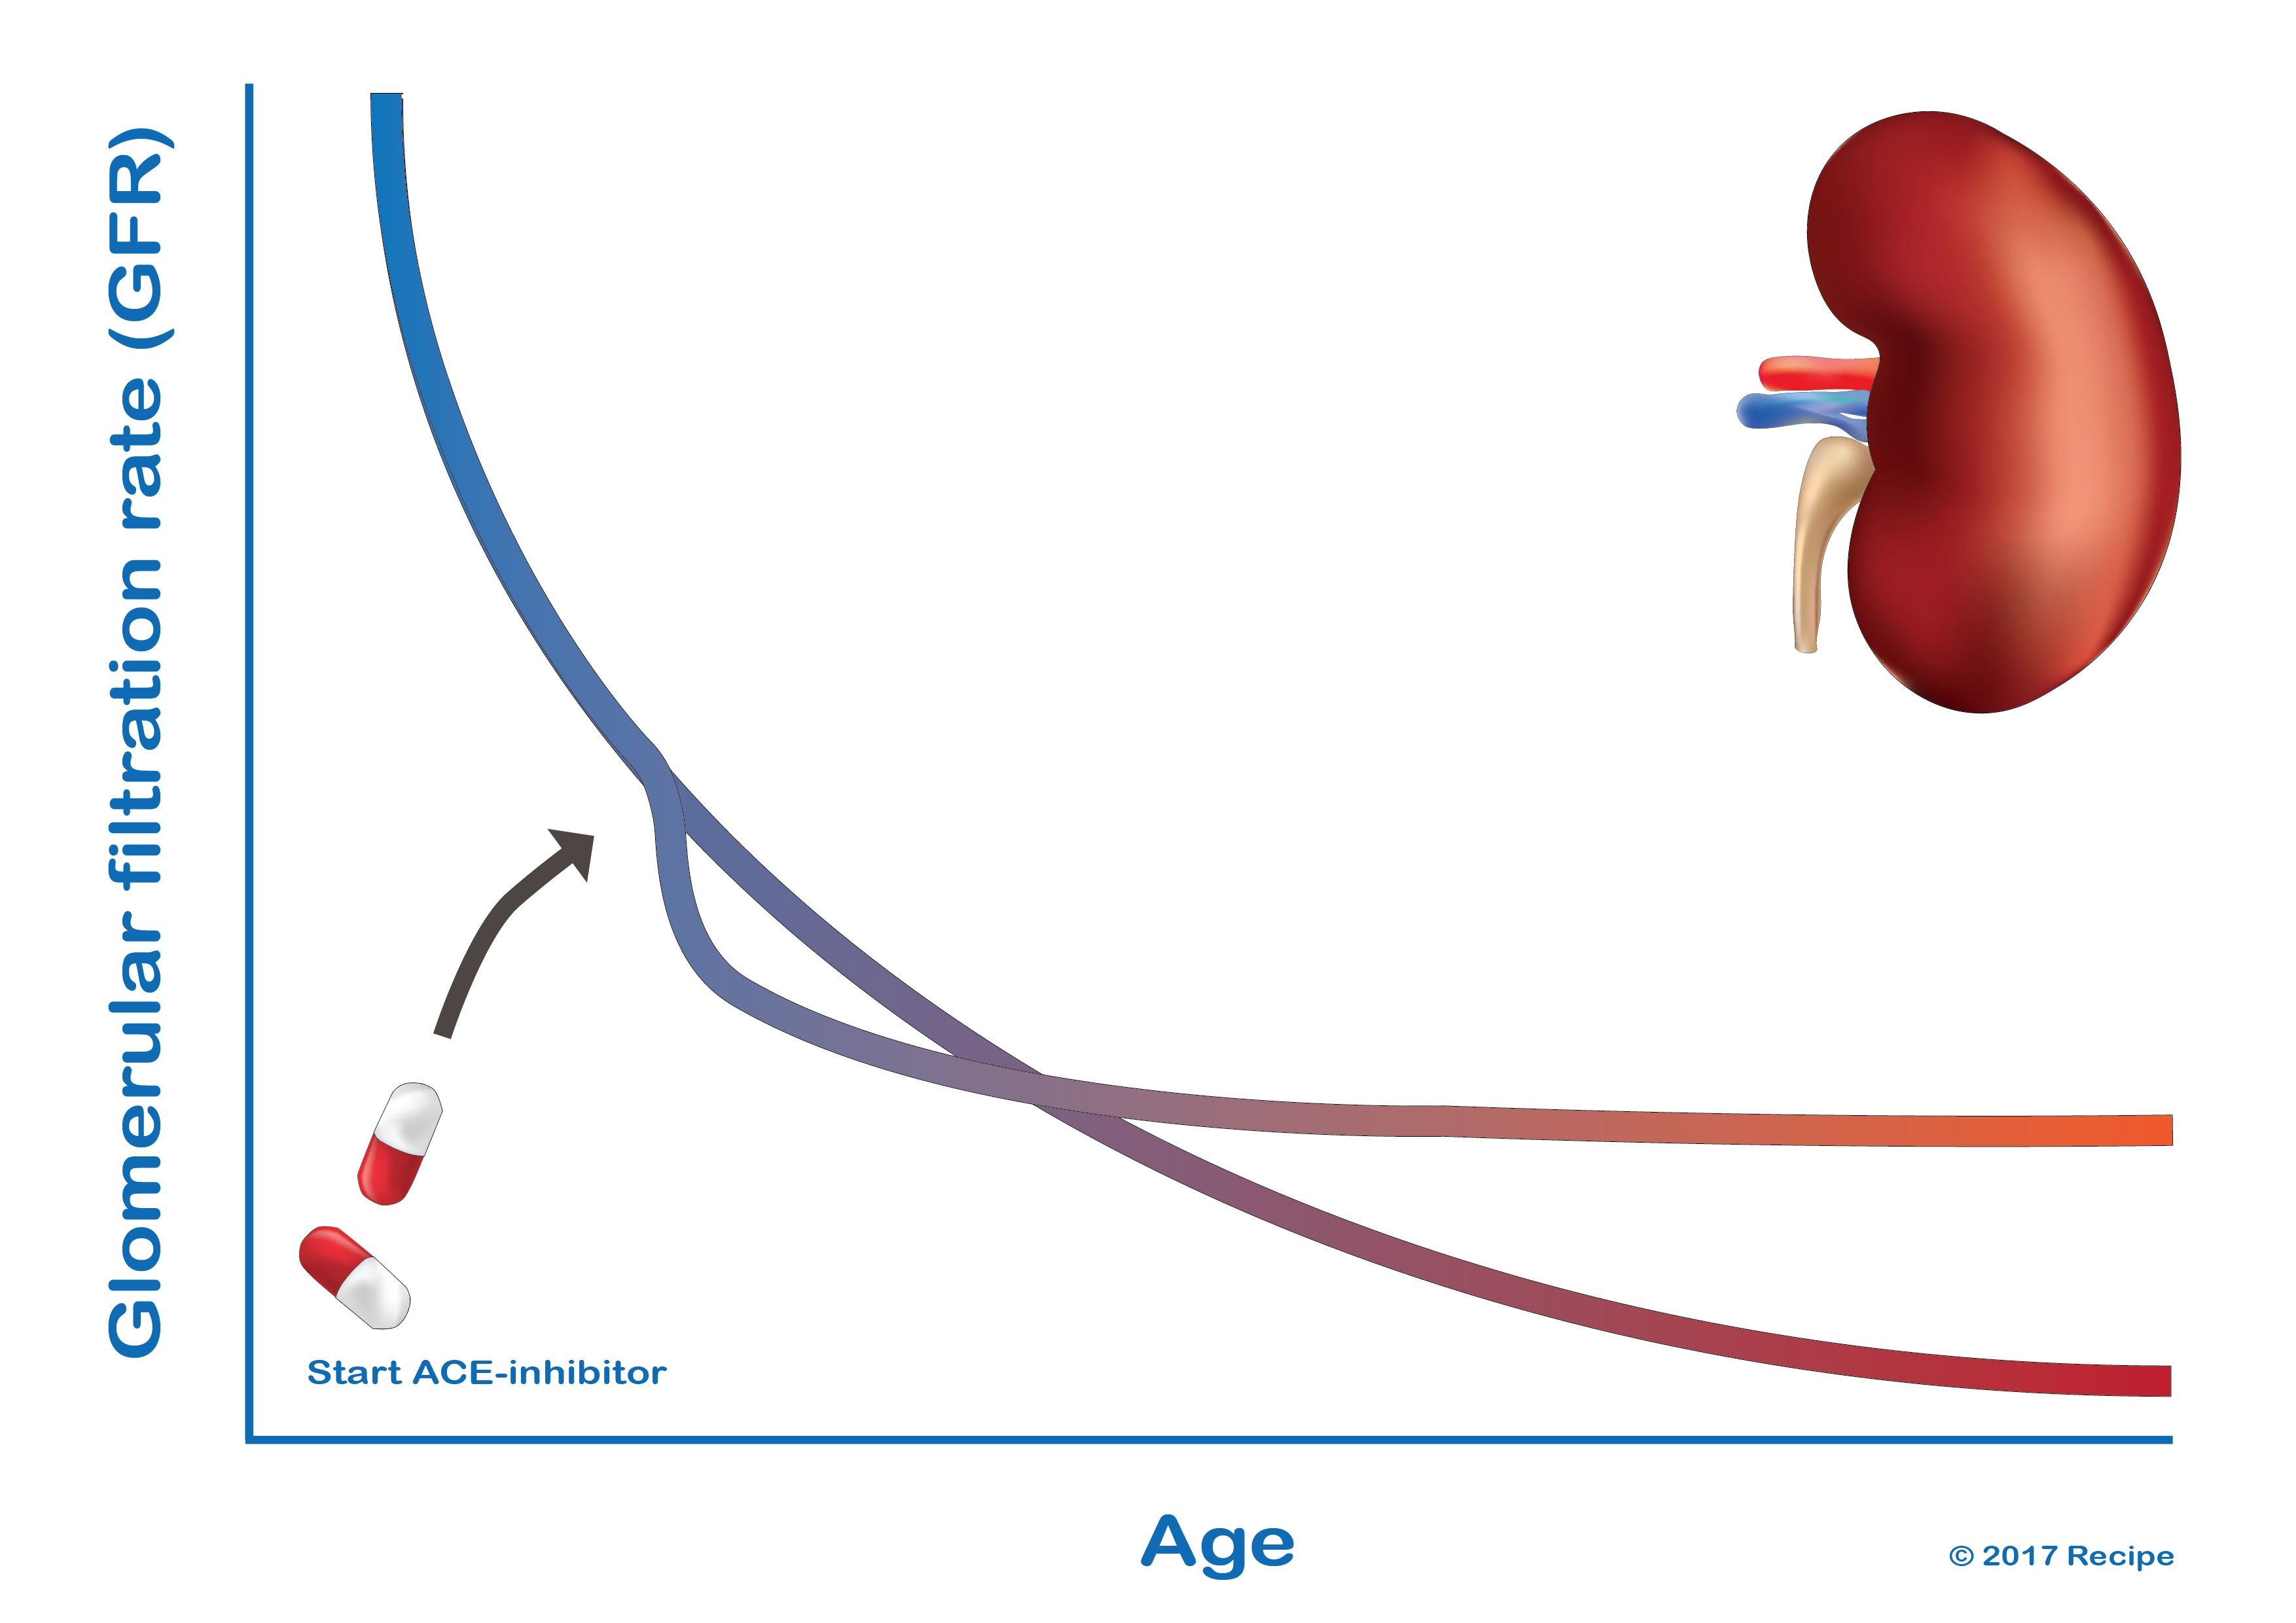 The influence of ACE-inhibitors on the glomerular filtration rate in diabetes patients